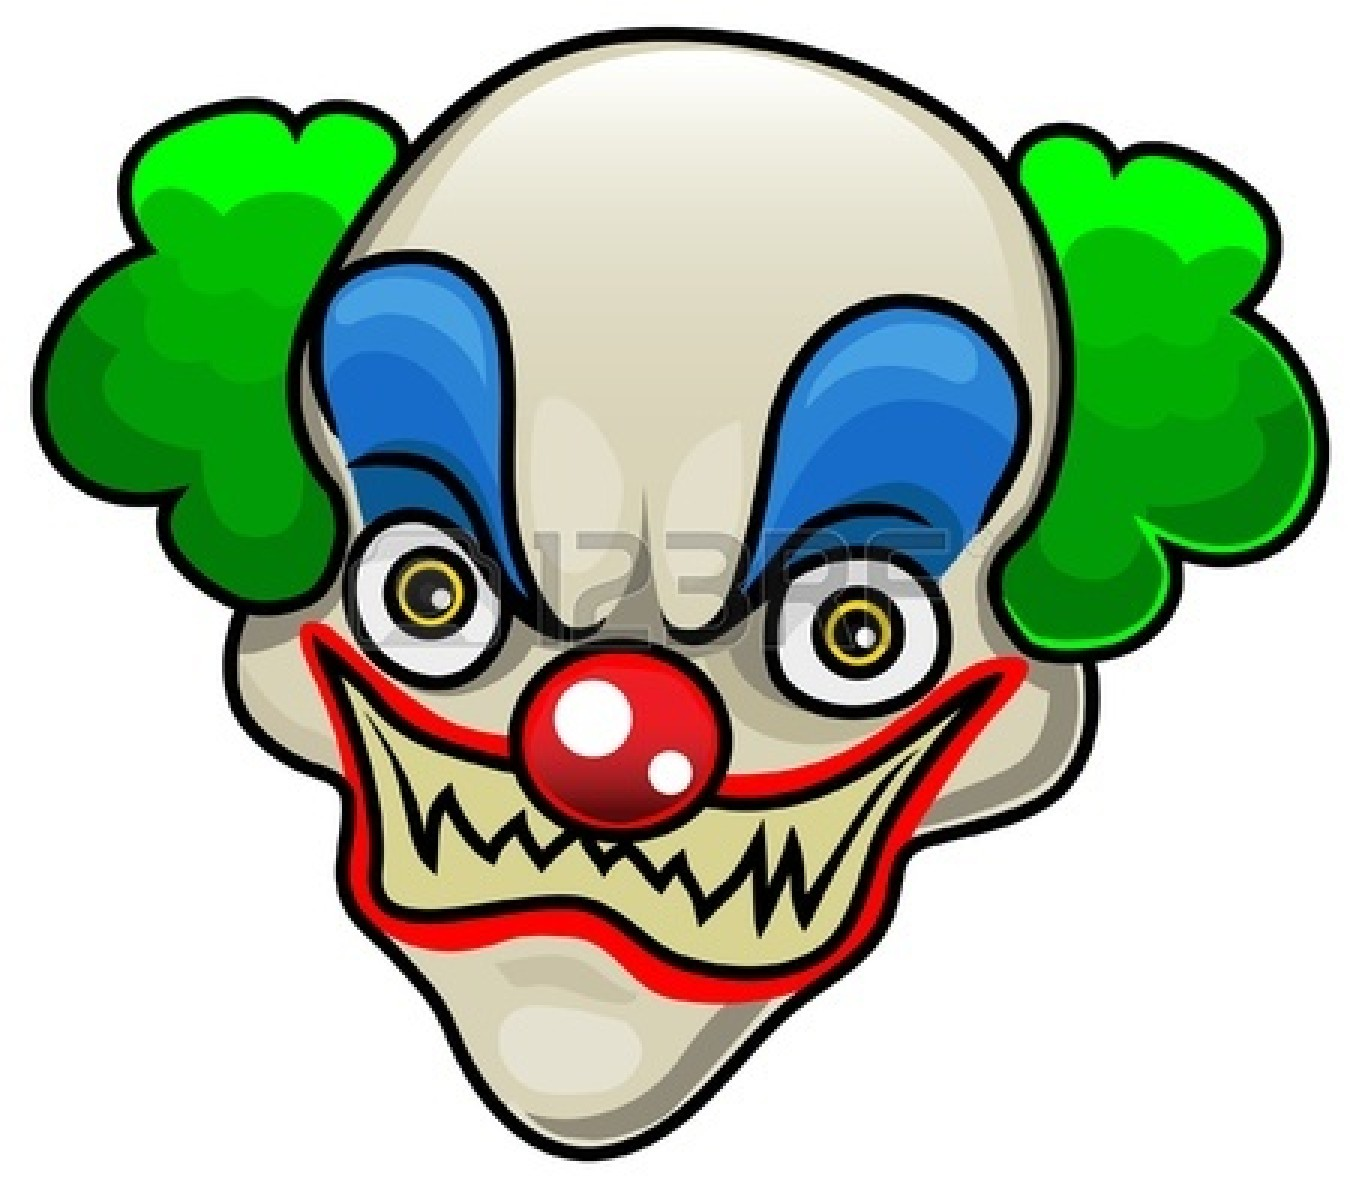 Scary Clown Clipart & Scary Clown Clip Art Images.